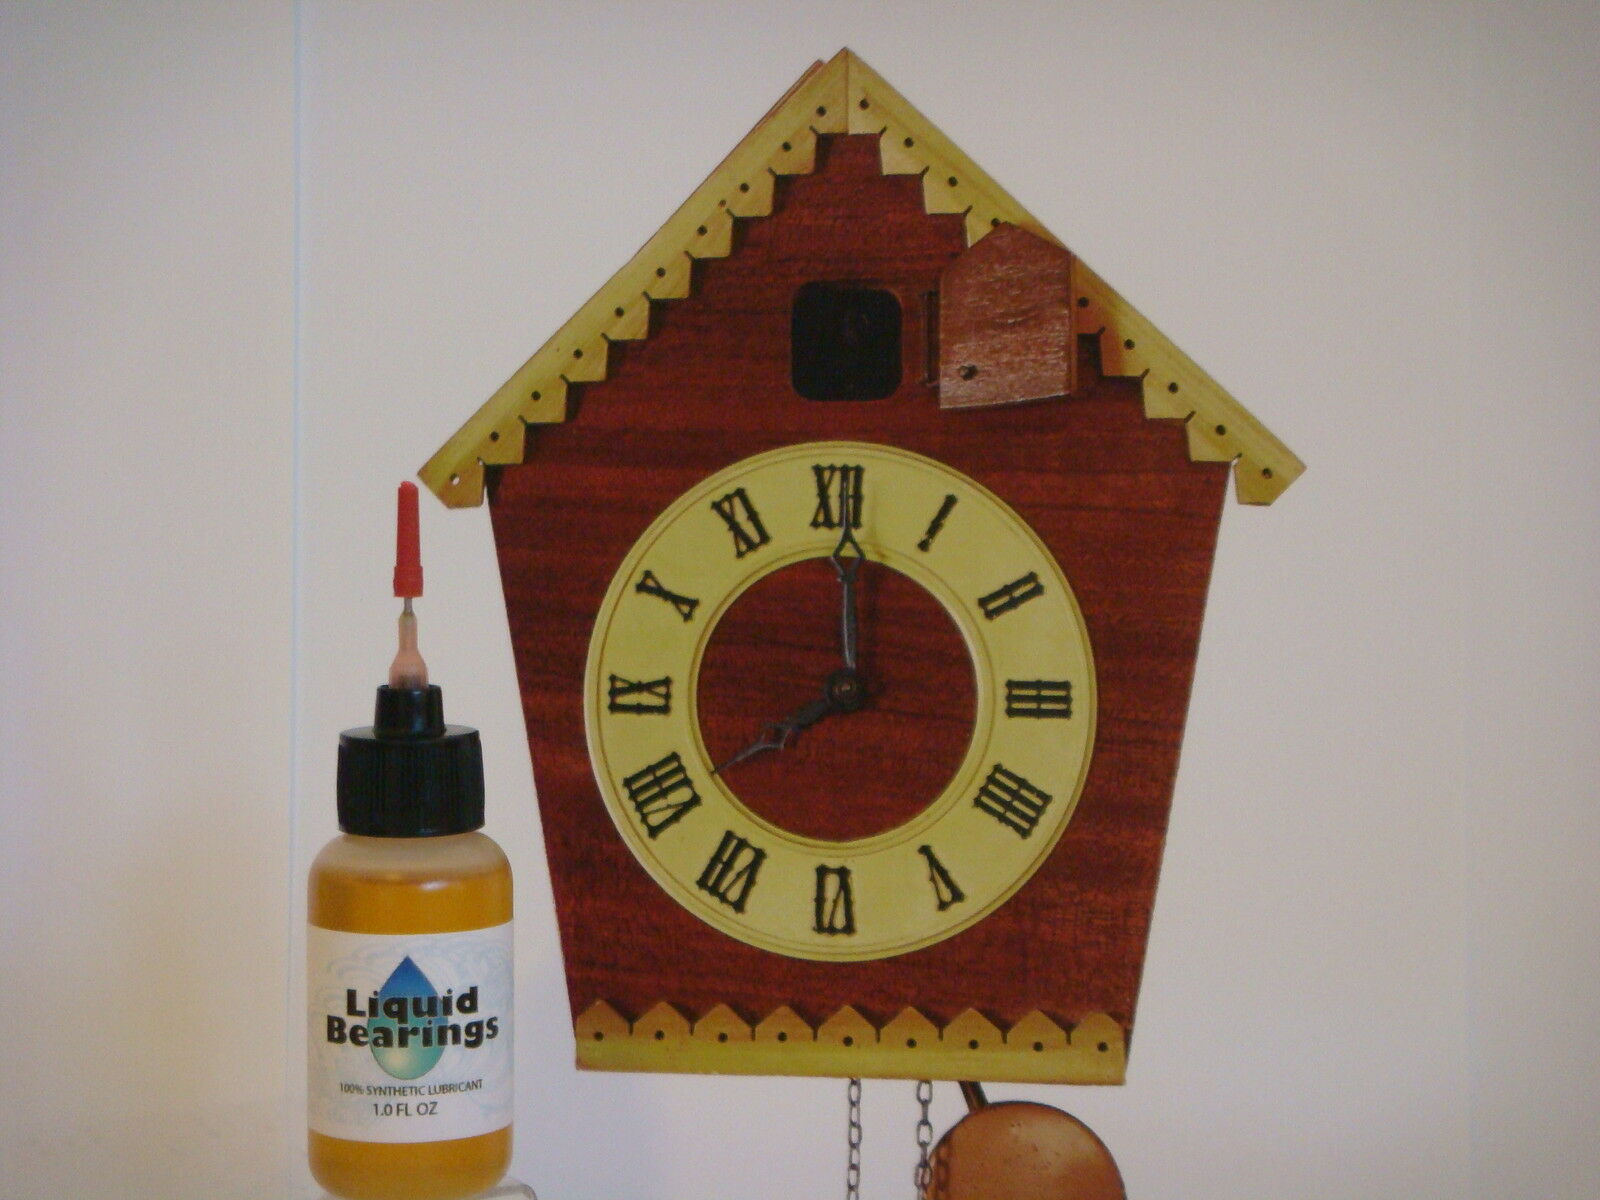 Liquid Bearings, BEST 100%-synthetic oil for Cuckoo or any vintage clocks, READ!